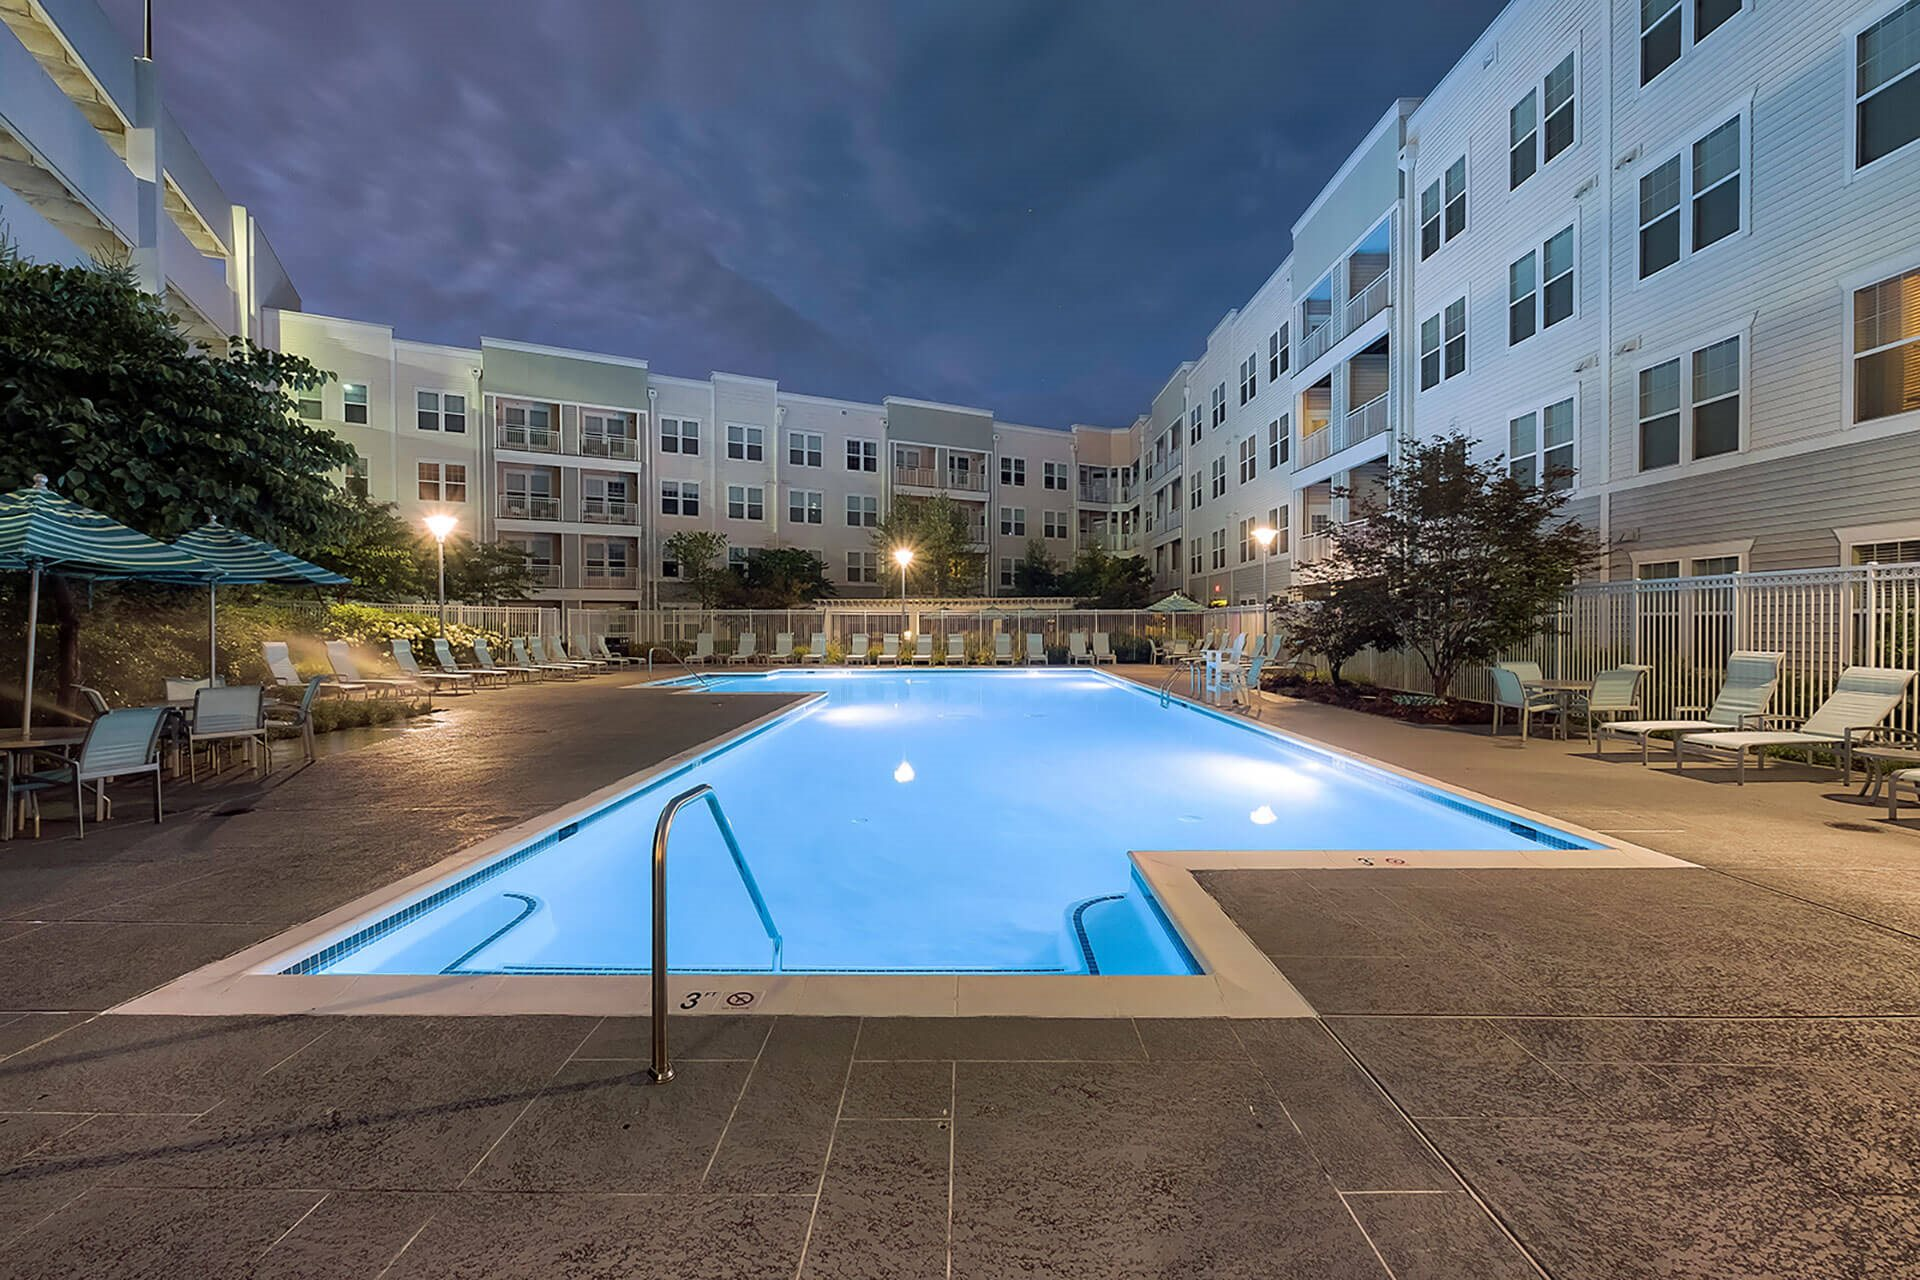 Lighted Pool at Night at The Ridgewood by Windsor, Fairfax, Virginia